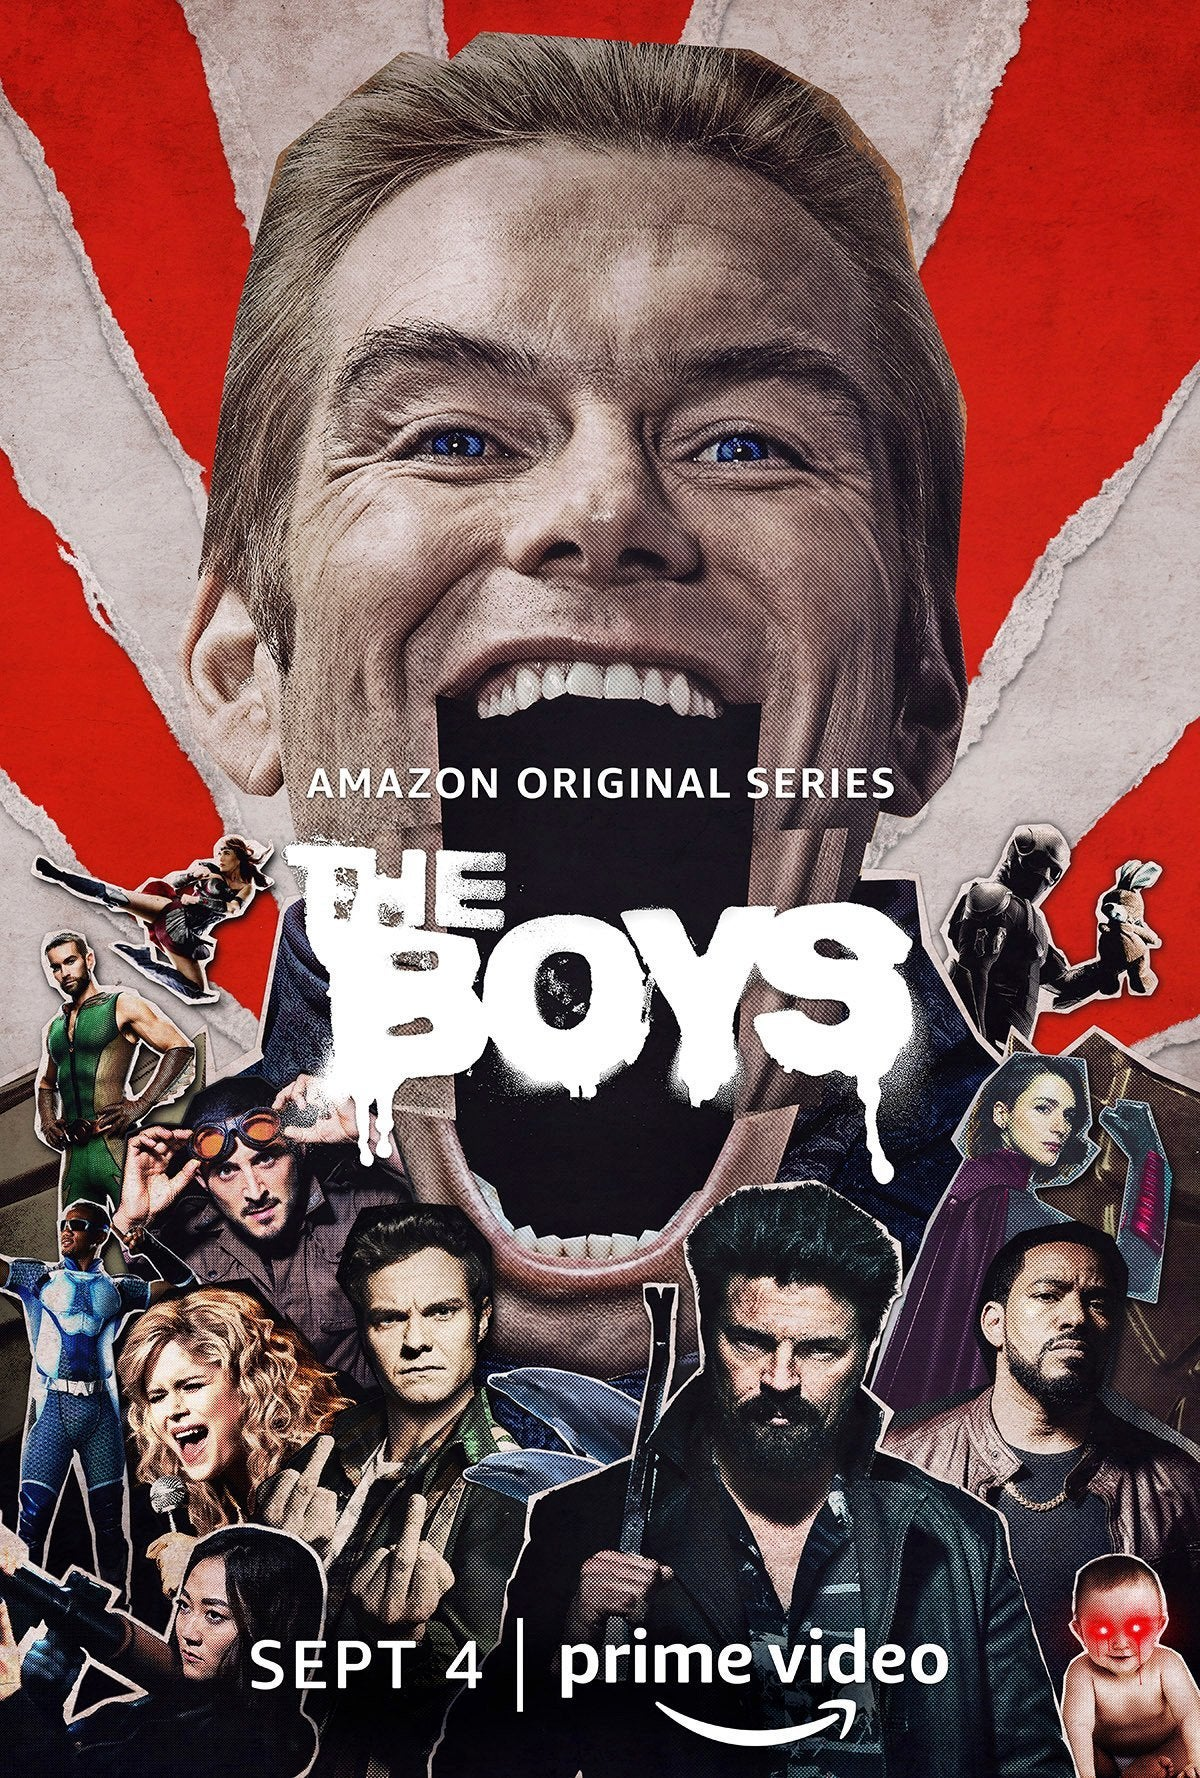 The Boys Season 2 Poster - Homelander (Antony Starr)